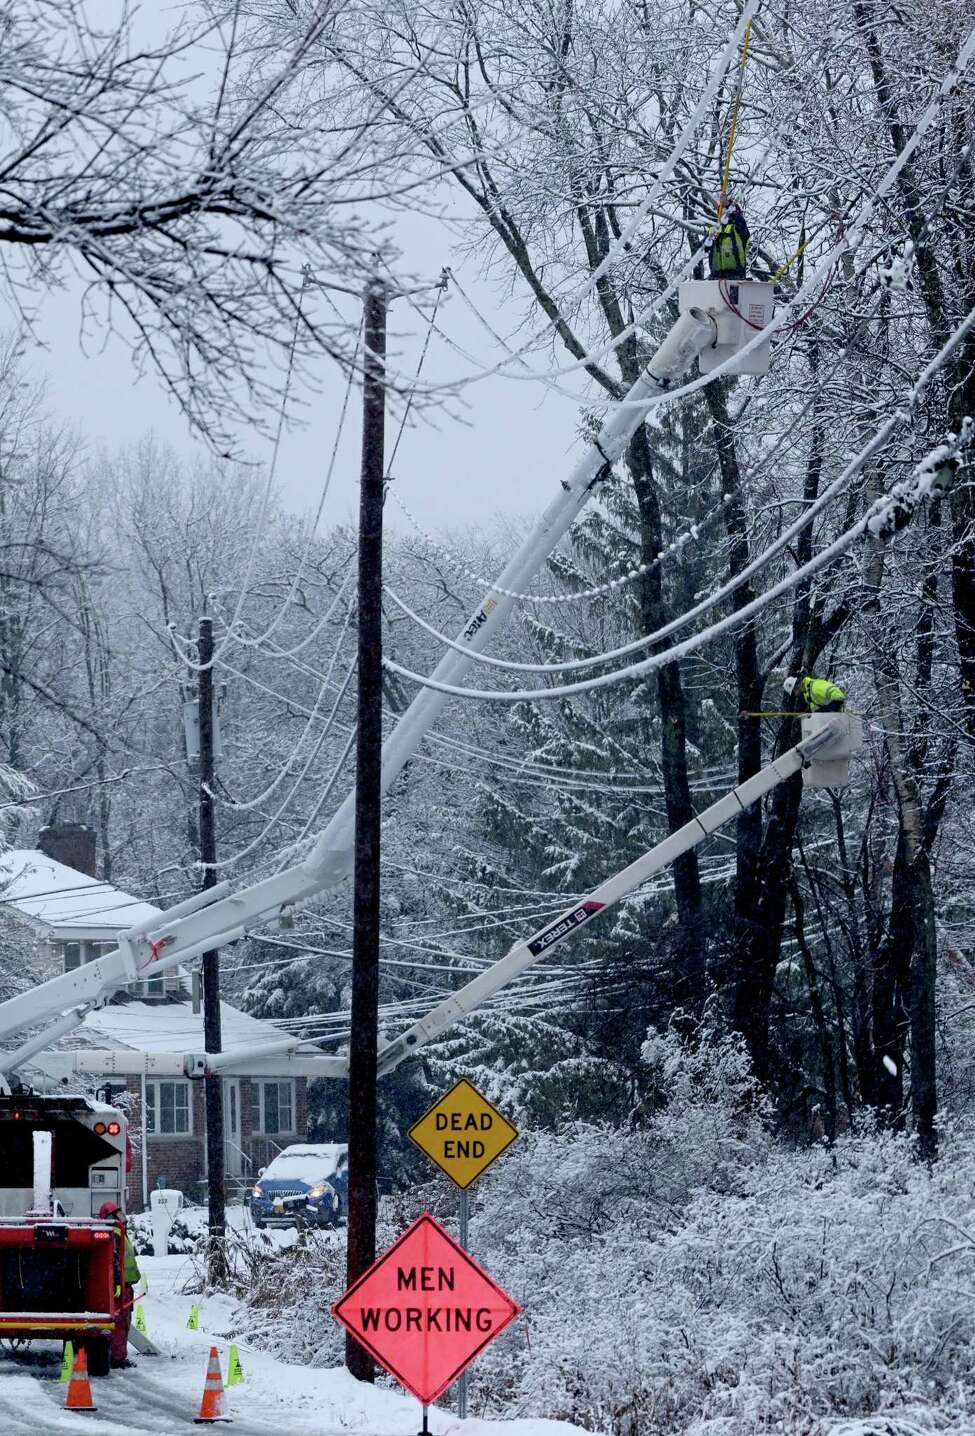 Workers from the Lewis Tree Service remove branches that become hazards to power lines on Maxwell Road during the snowy weather Tuesday Nov. 27, 2018 in Loudonville, N.Y. (Skip Dickstein/Times Union)